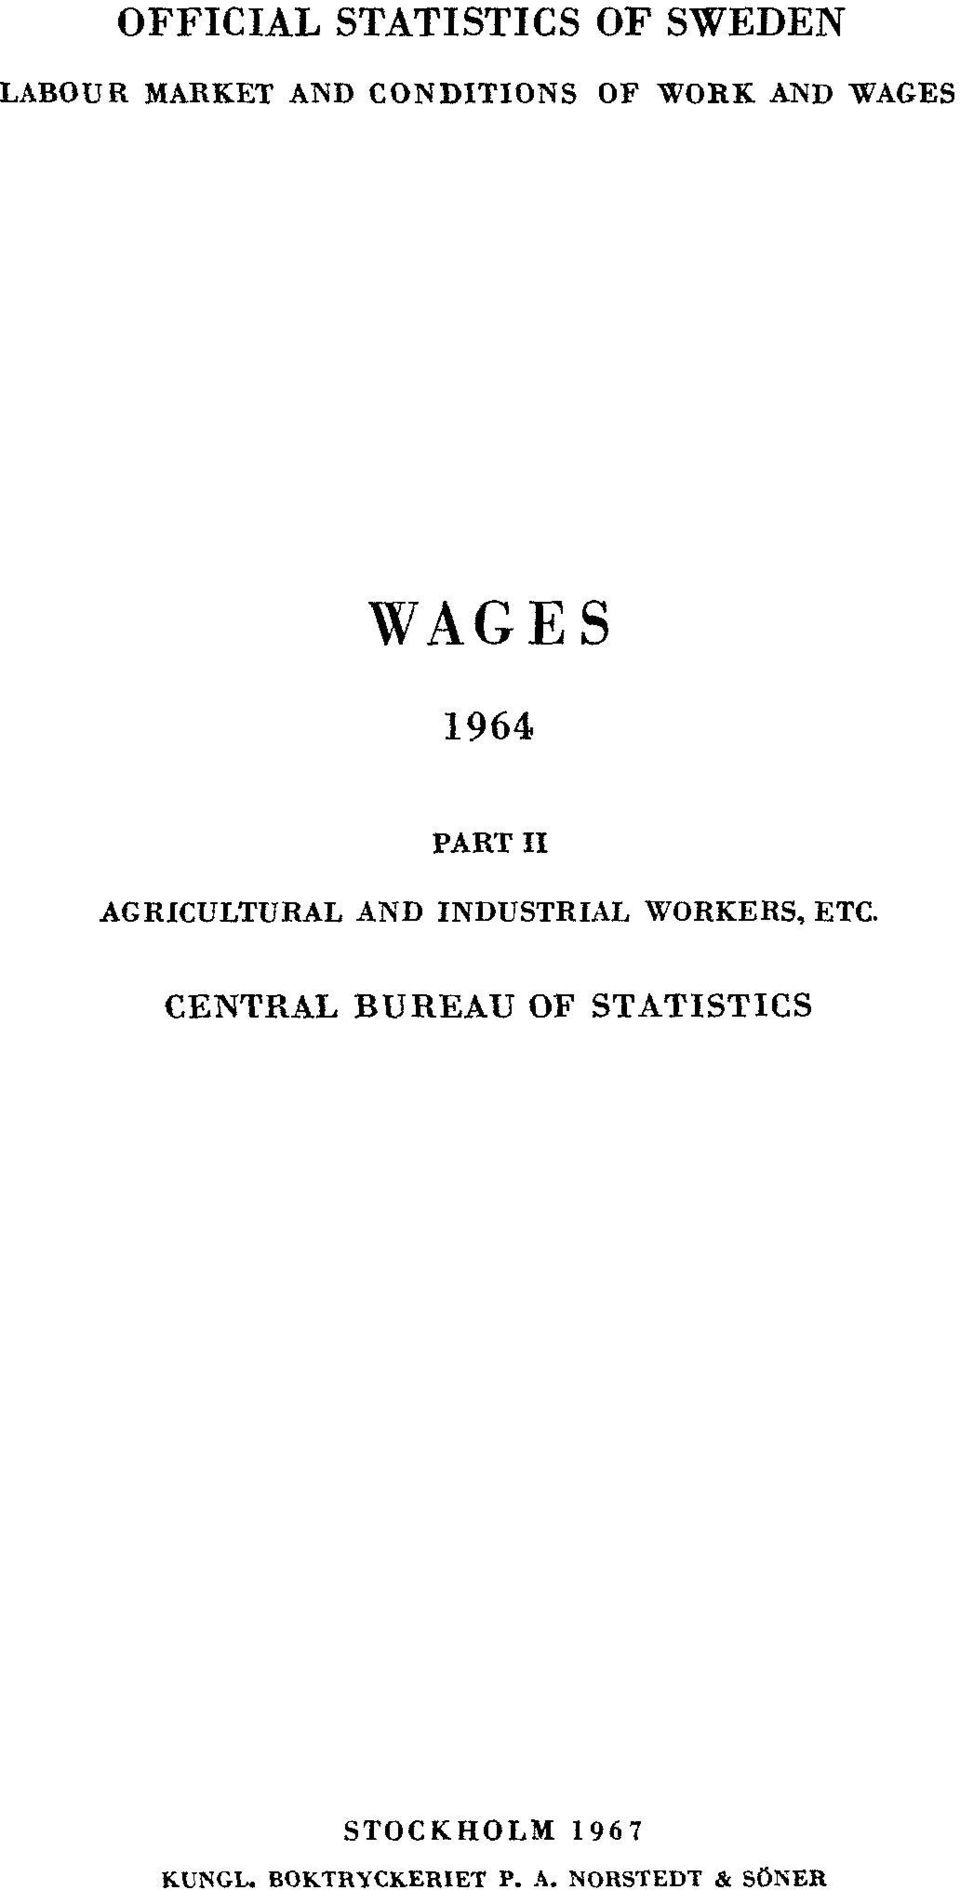 AGRICULTURAL AND INDUSTRIAL WORKERS, ETC.